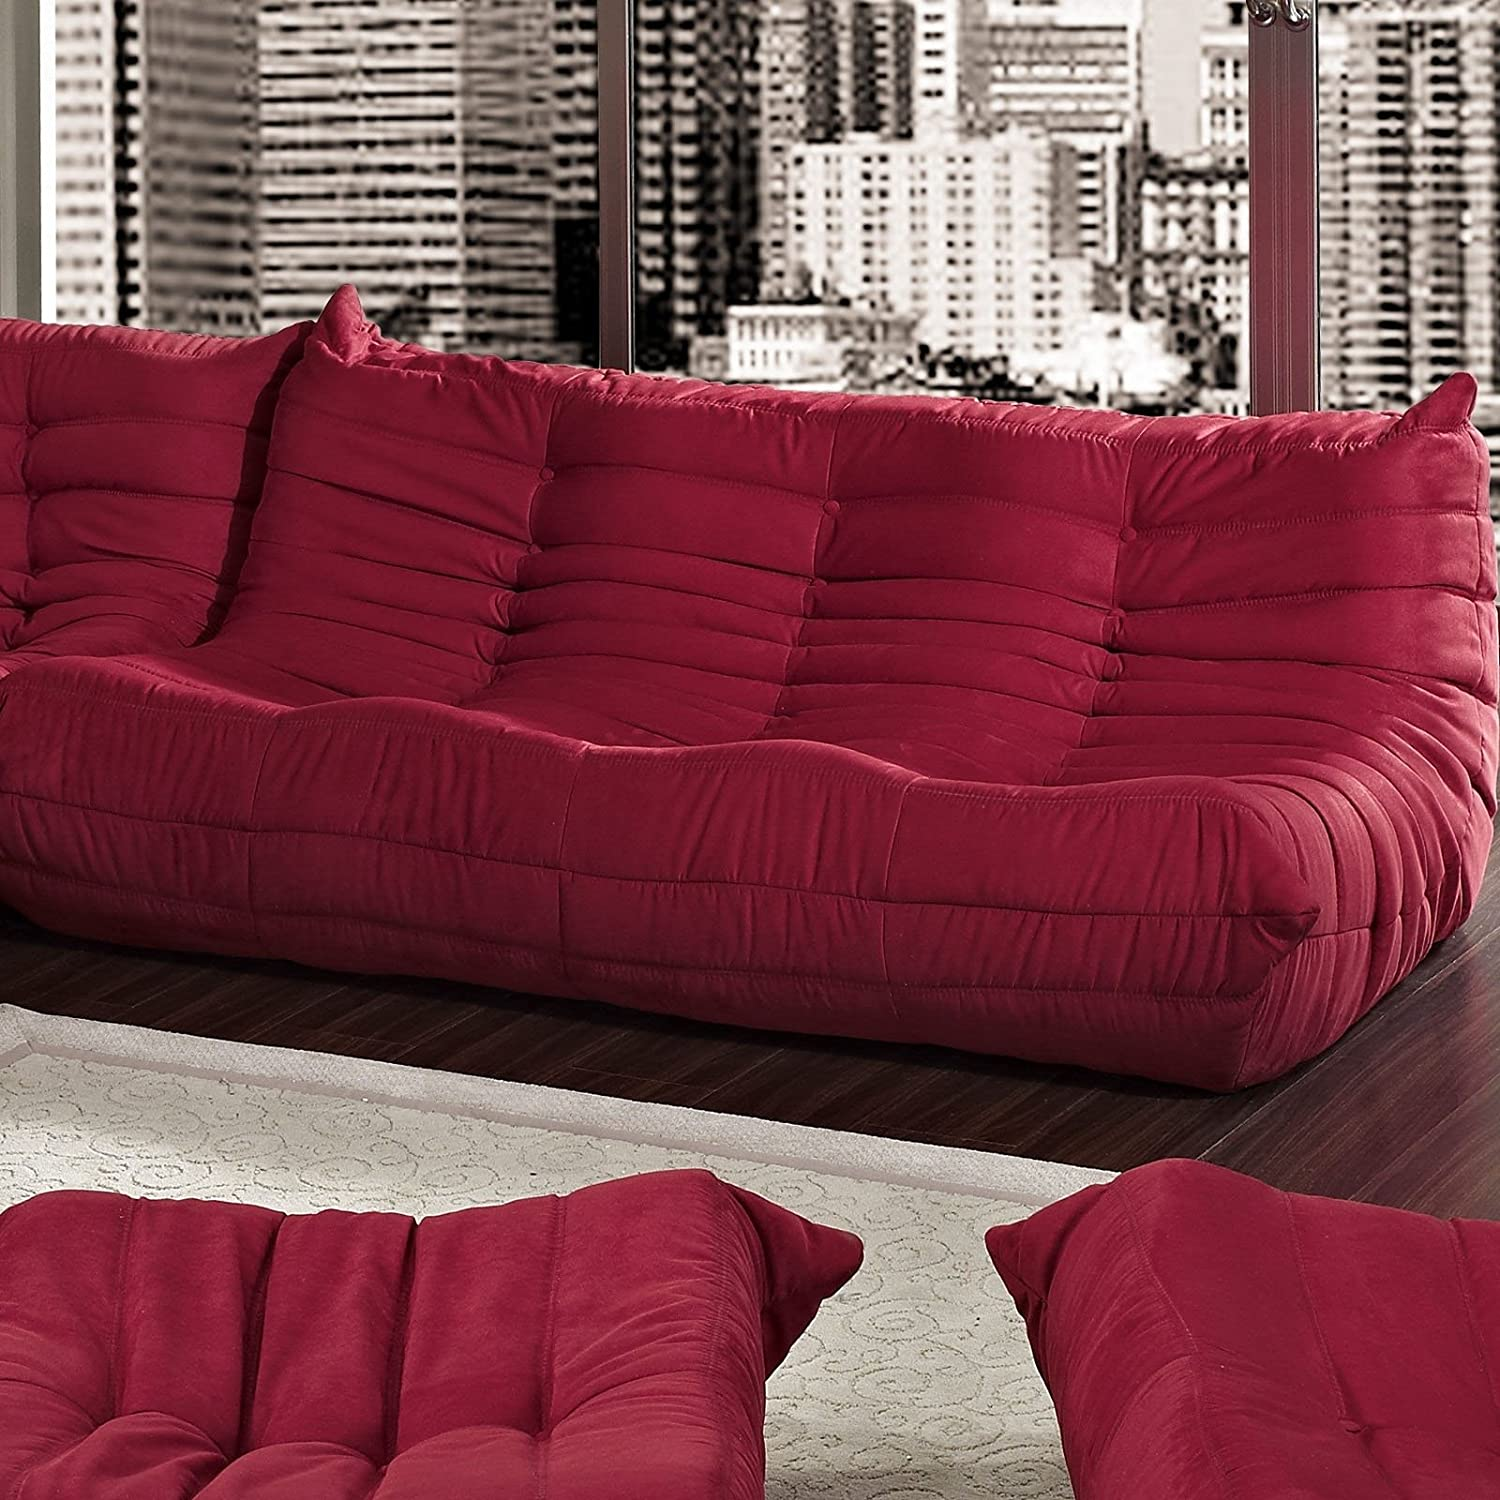 Red Sectional Couch Red Color Sectional Sofa Upholstered In High